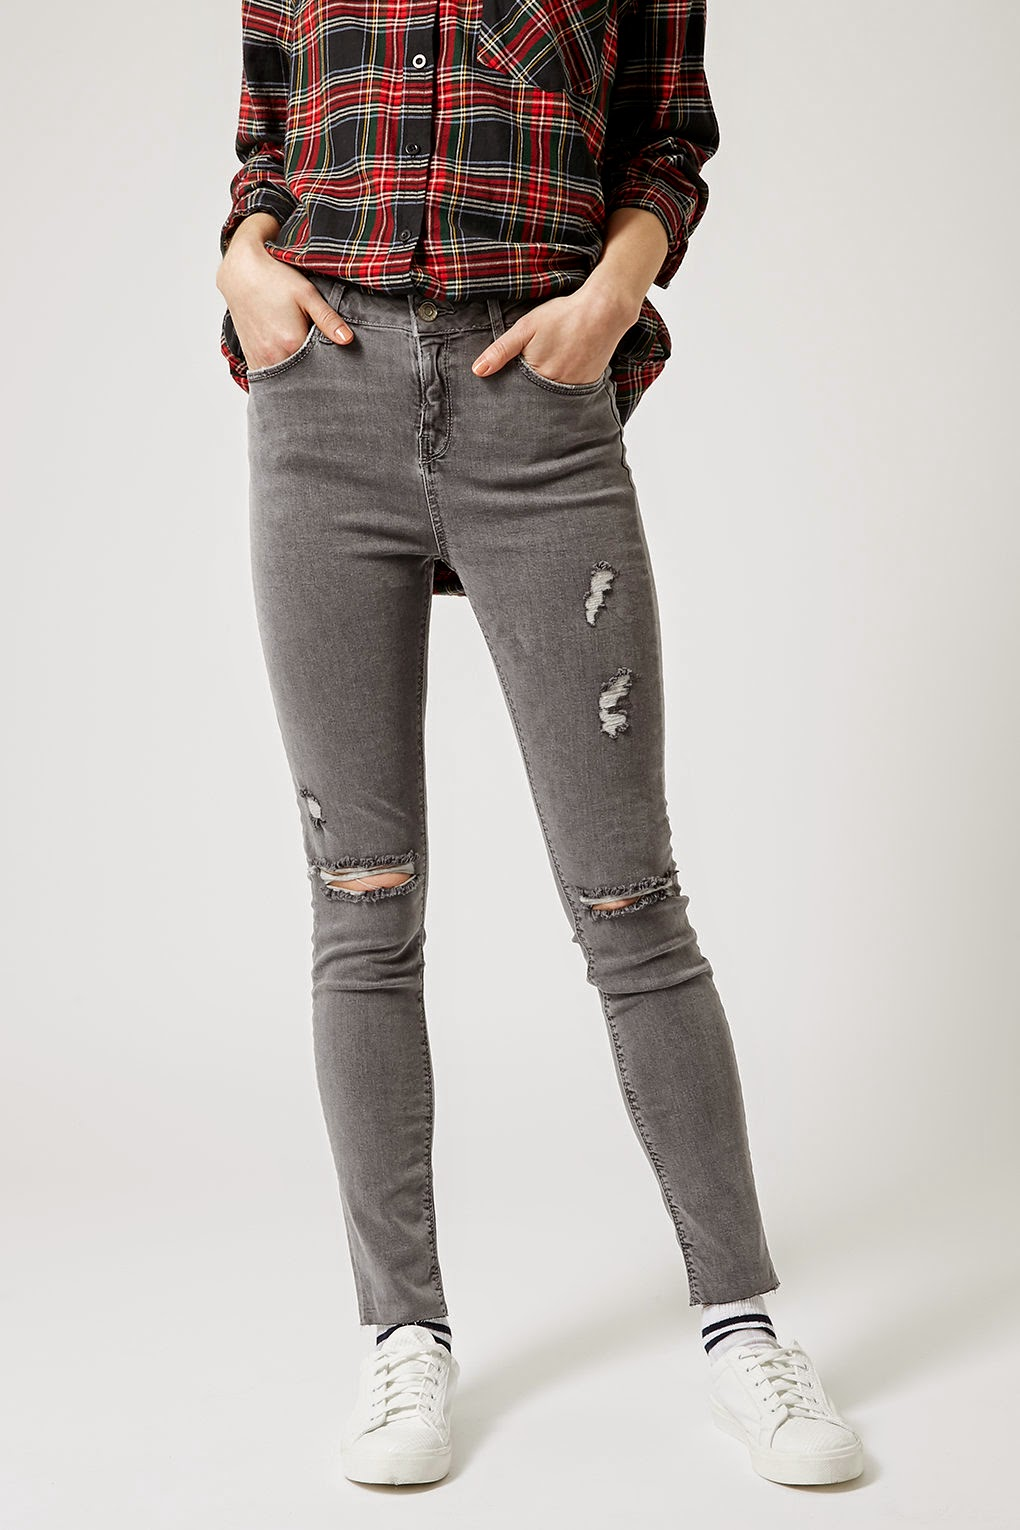 topshop ripped jamie jeans, topshop grey jamie jeans review,